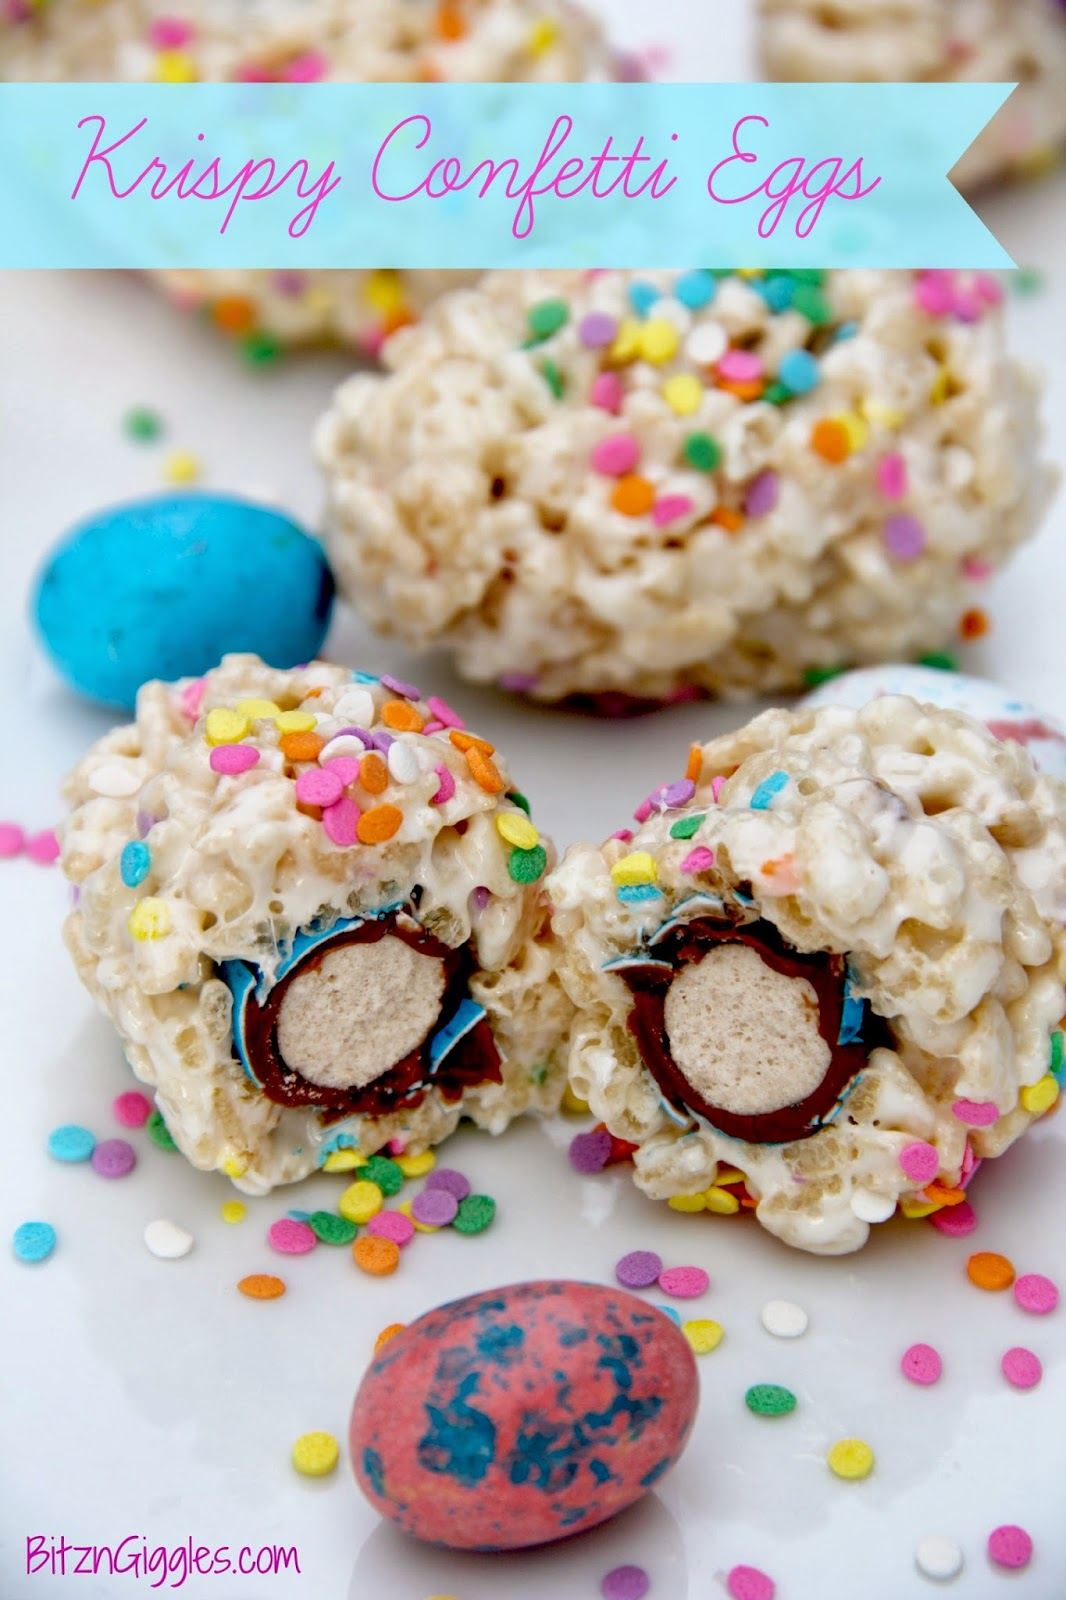 Krispy Confettii Eggs - A perfect Easter treat with a surprise hiding inside!